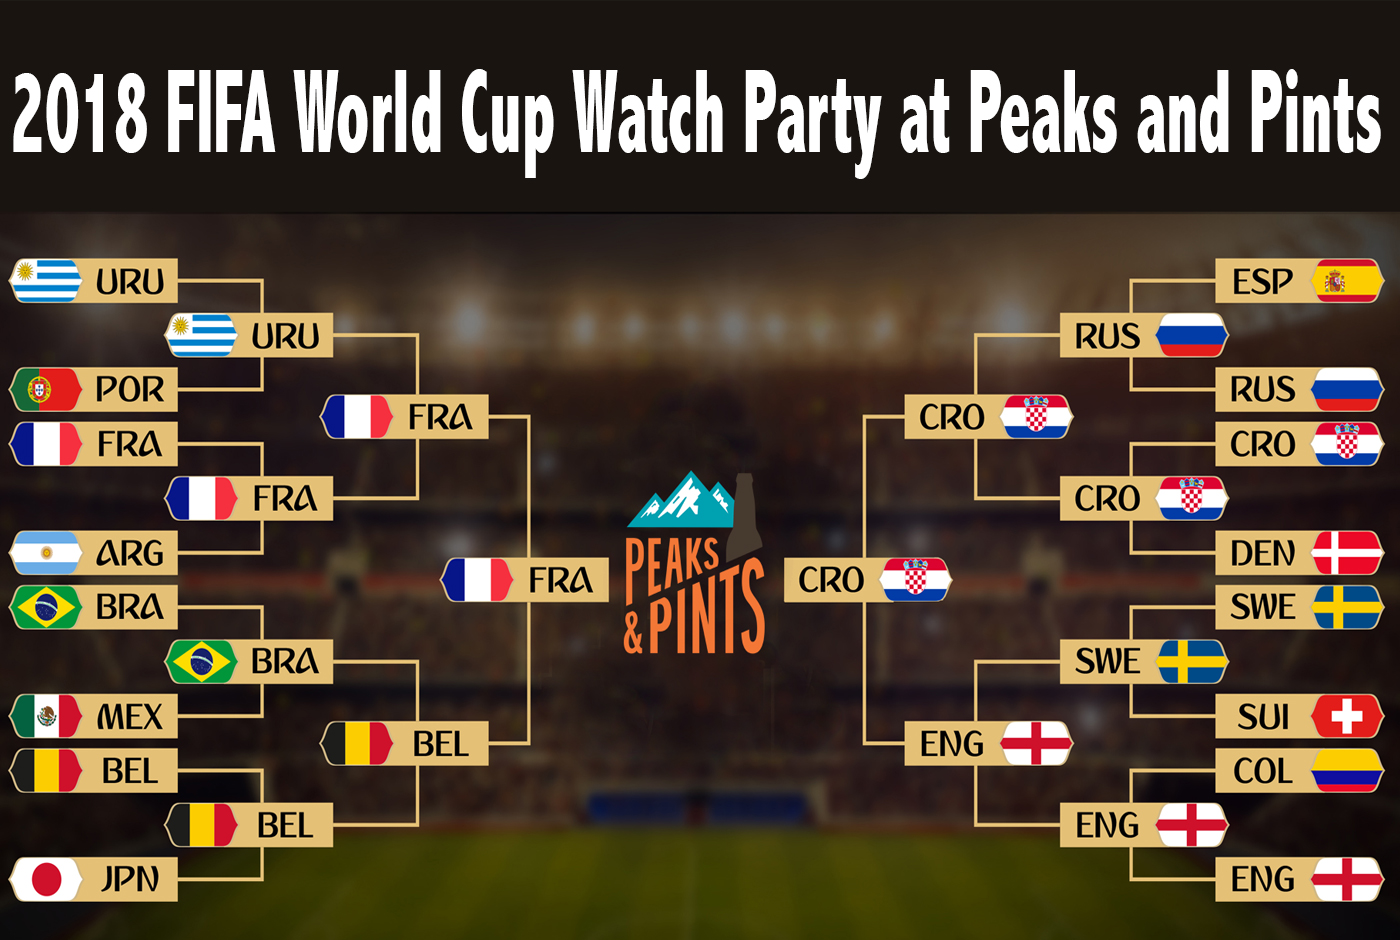 2018 fifa world cup watch party at peaks and pints peaks and pints event navigation junglespirit Choice Image